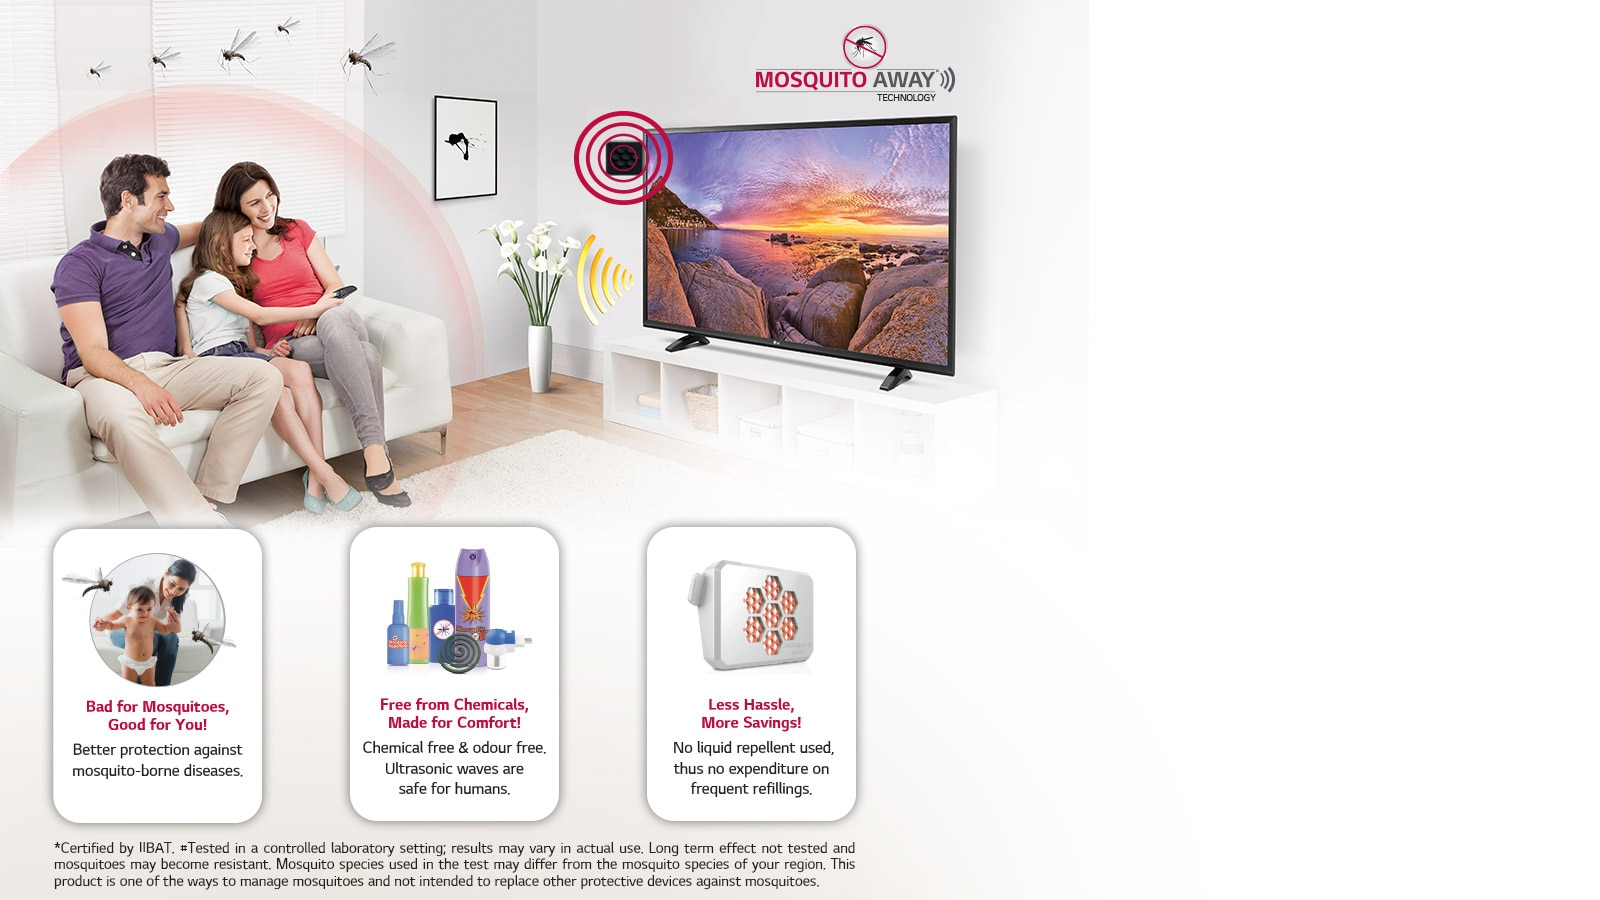 Buy Lg 24lj470a Mosquito Away Gold Led Tv In India Lg In